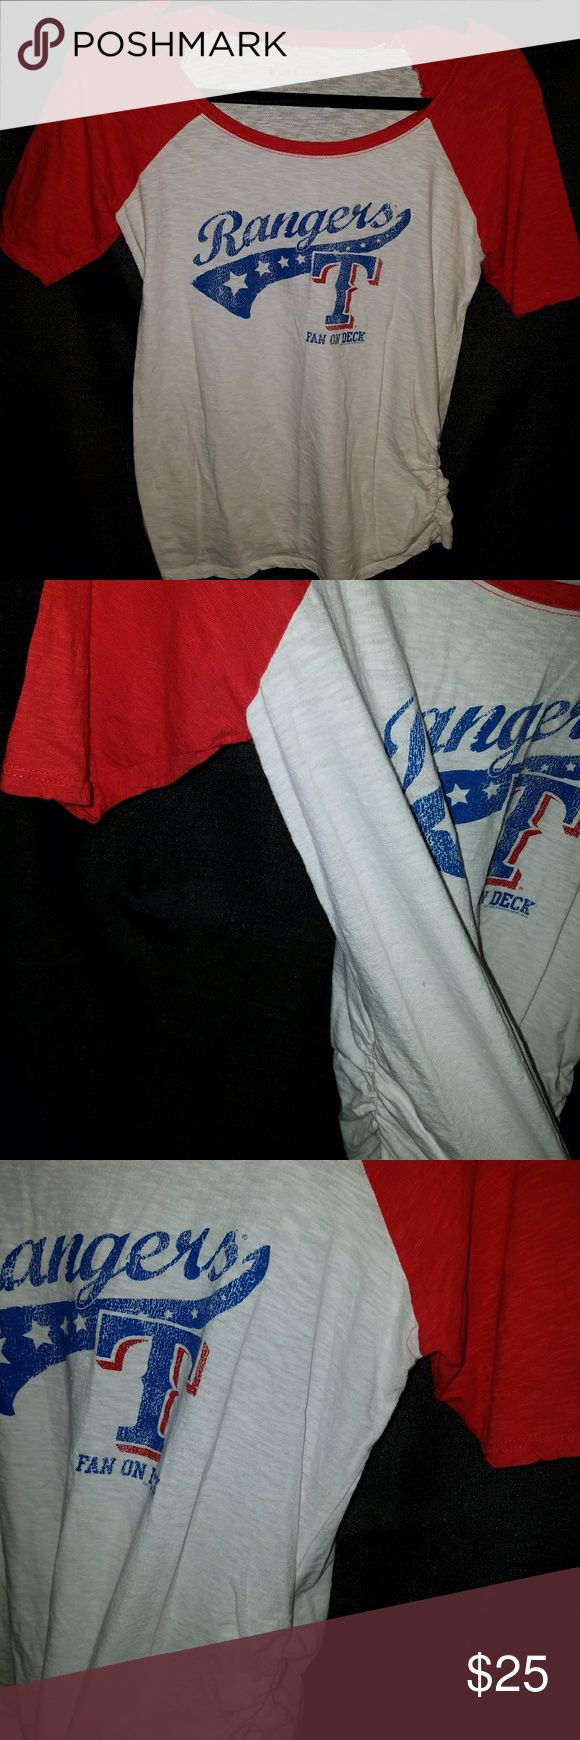 """Tx Rangers """"Fan on board"""" maternity shirt Soft as a grape maternity sports shirts. Elastic stretch rivets on both sides of the shirt for maximum coverage for expecting mommy's. Perfect to support your Rangers Pride. Sporting a size small. One small hole on the back of the neck. soft as a grape Tops"""